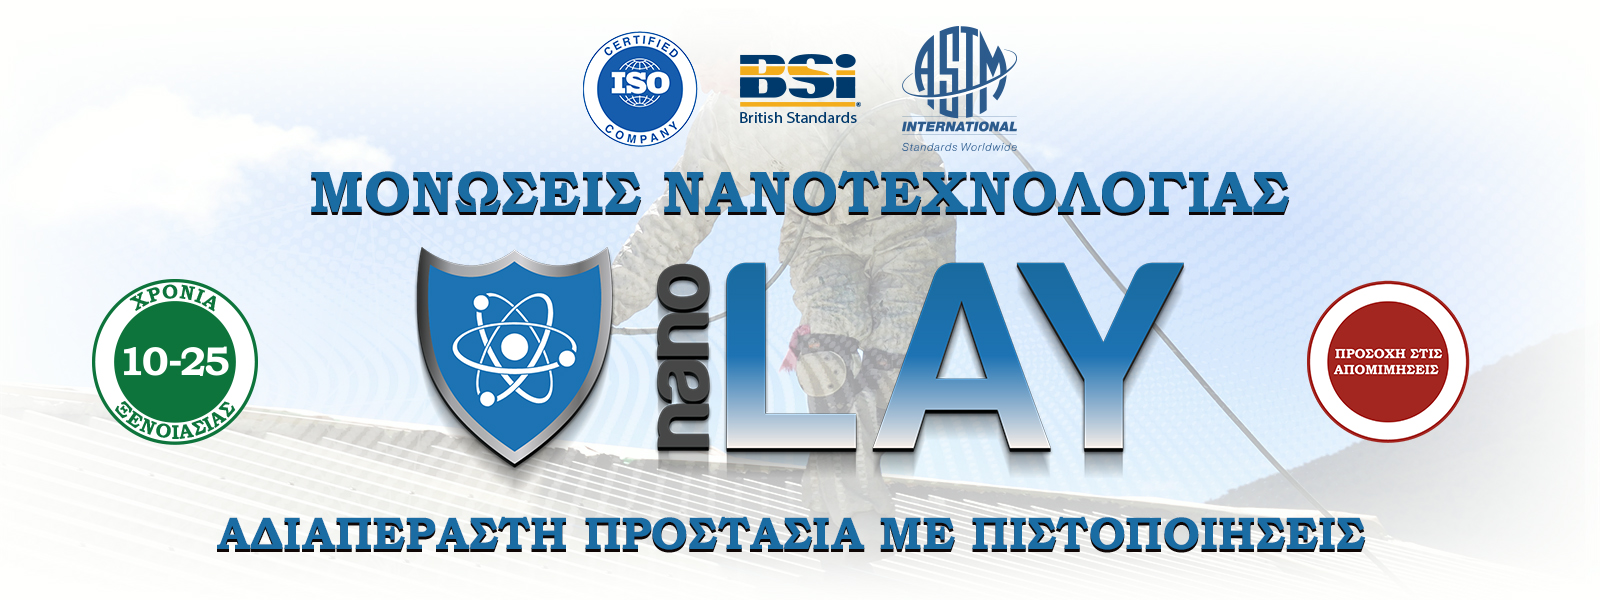 Nanolay Hellas Slider #1